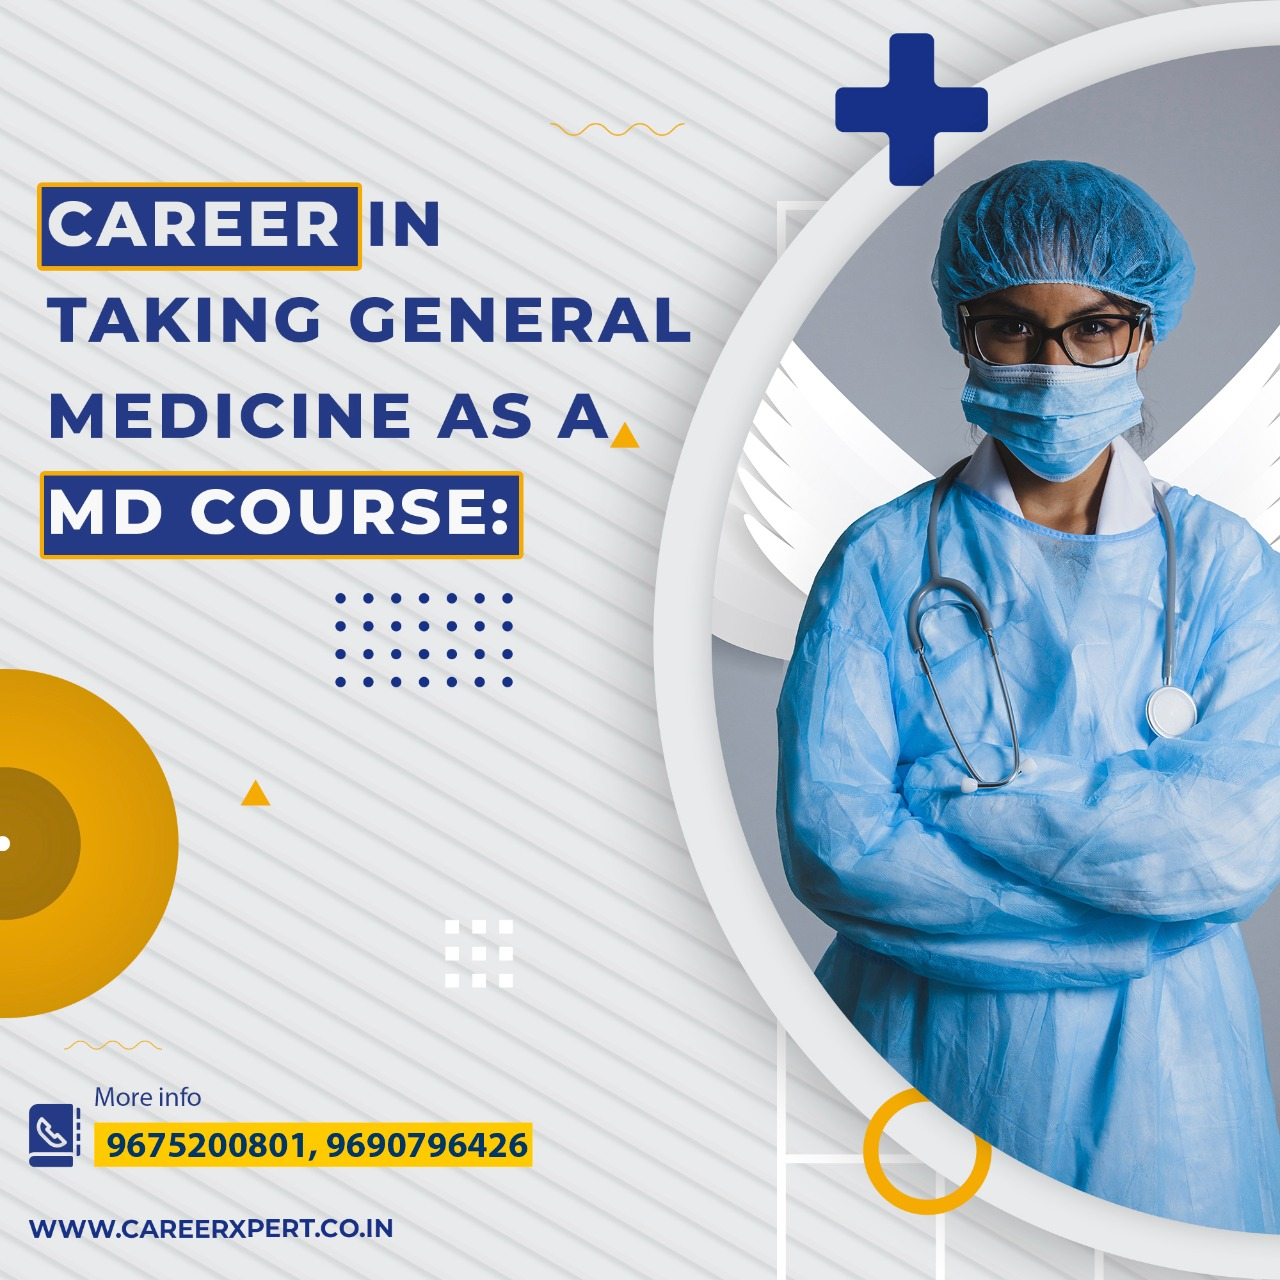 CAREER IN TAKING GENERAL MEDICINE AS A MD COURSE